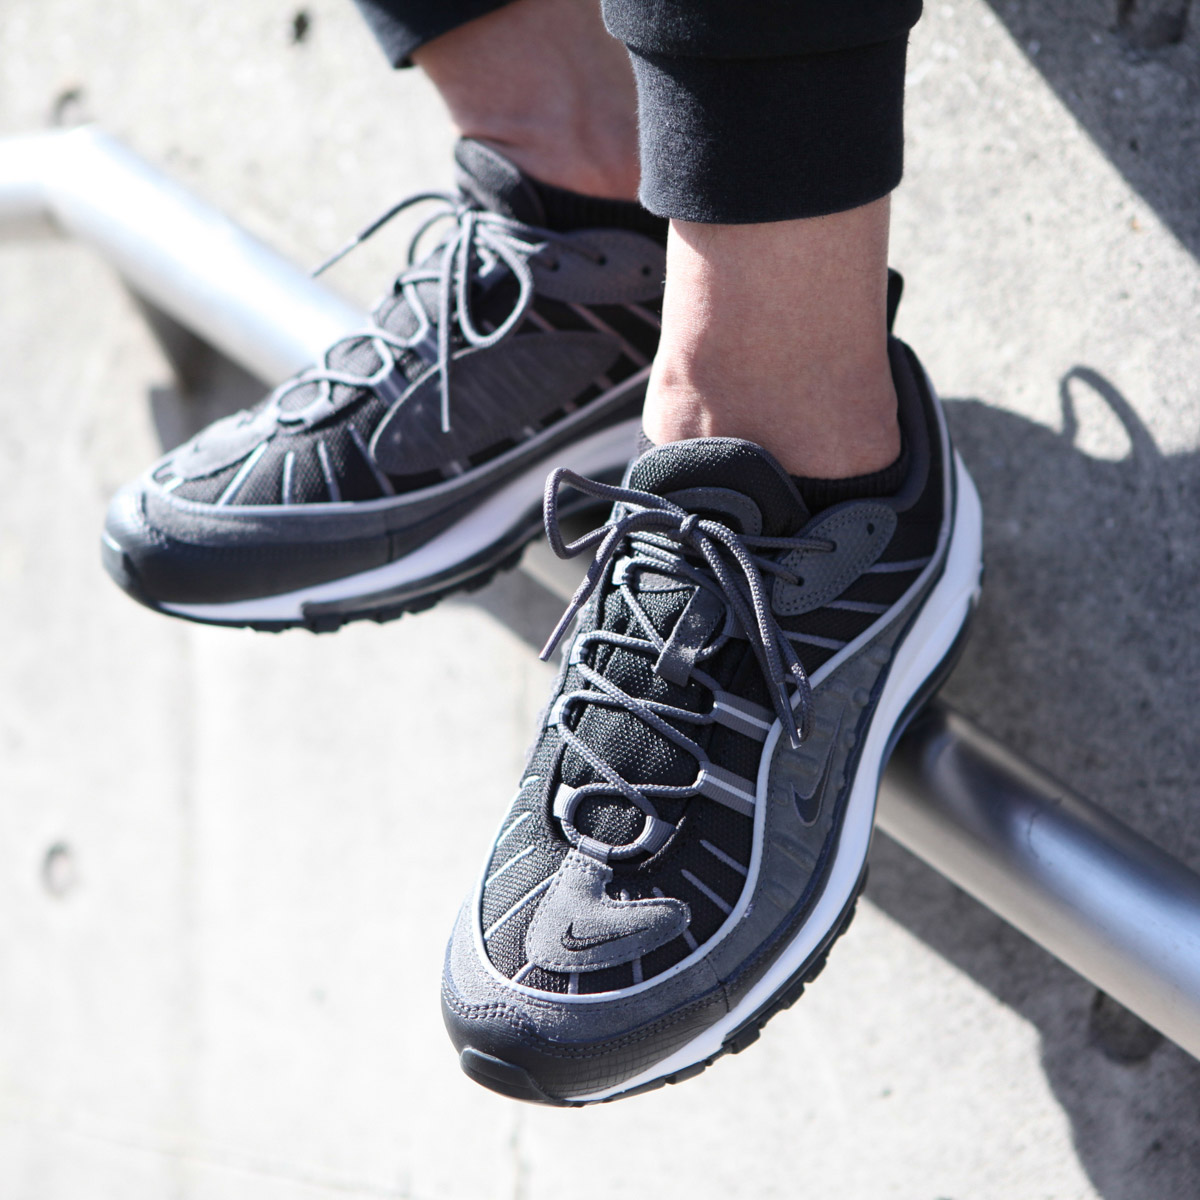 NIKE AIR MAX 98 SE(ナイキ エア マックス 98 SE)(BLACK/ANTHRACITE-DARK GREY-WHITE)18SU-S